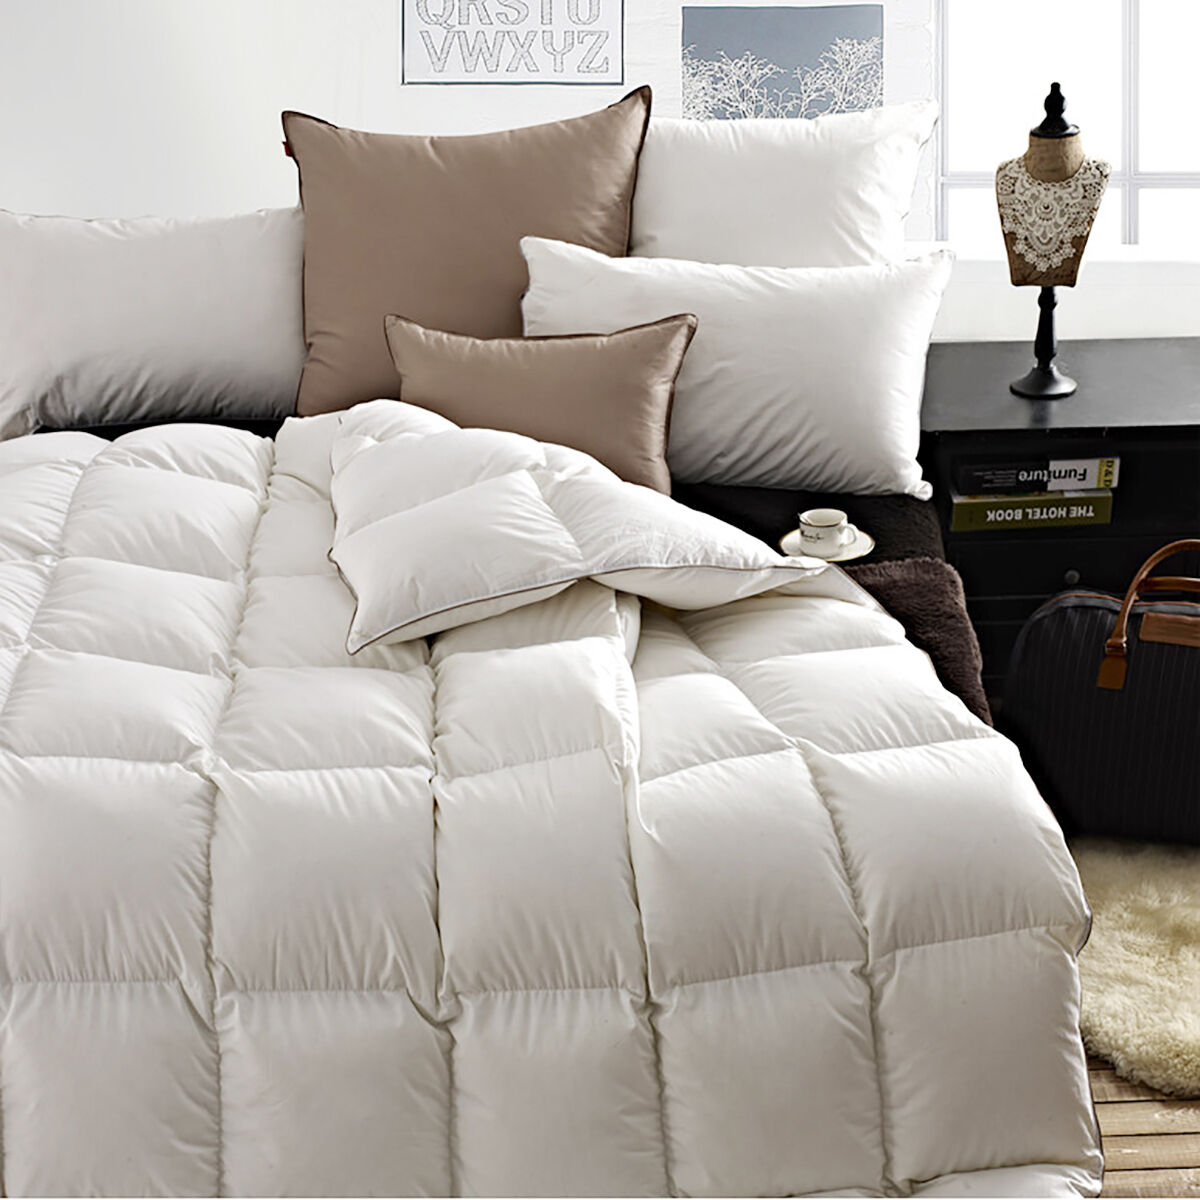 snowman goose down comforter king 65oz fill weight baffle box 100 cotton soft ebay. Black Bedroom Furniture Sets. Home Design Ideas